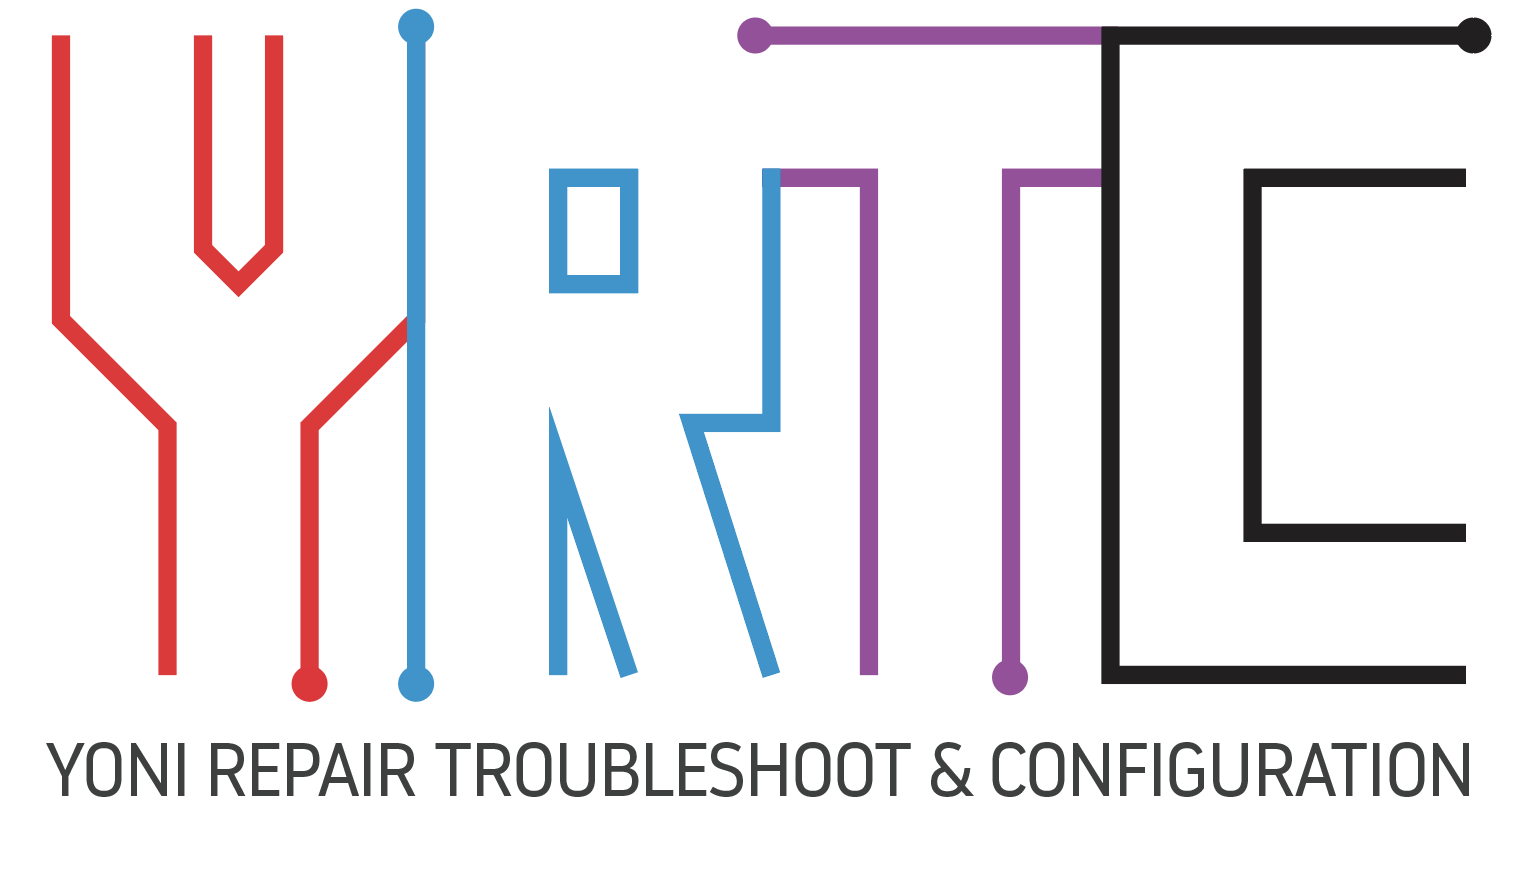 Yoni Repair Troubleshoot & Configuration